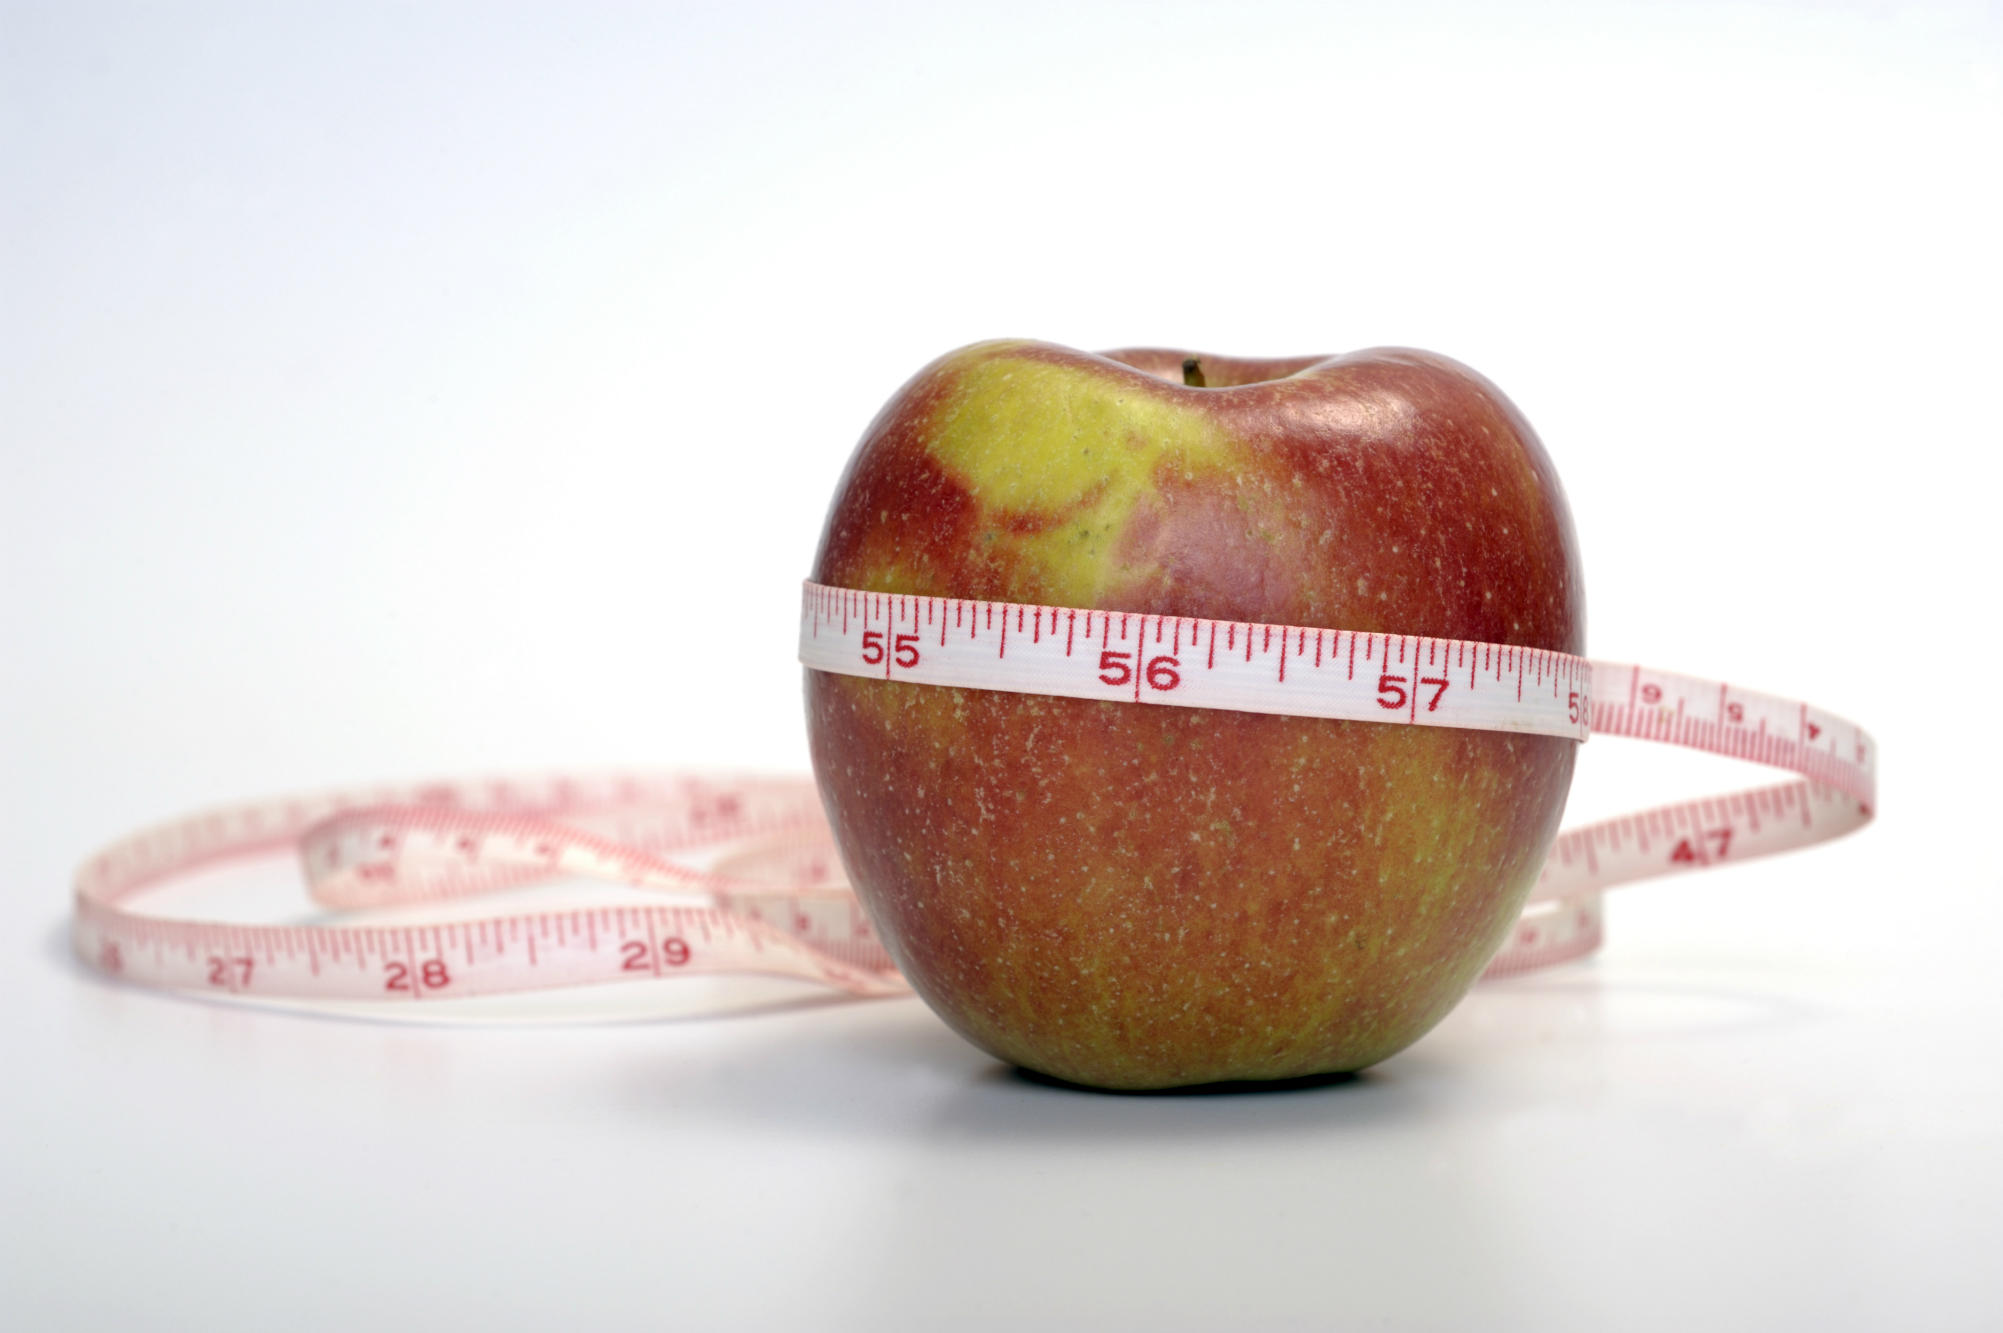 An obesity campaign apple with a measuring tape